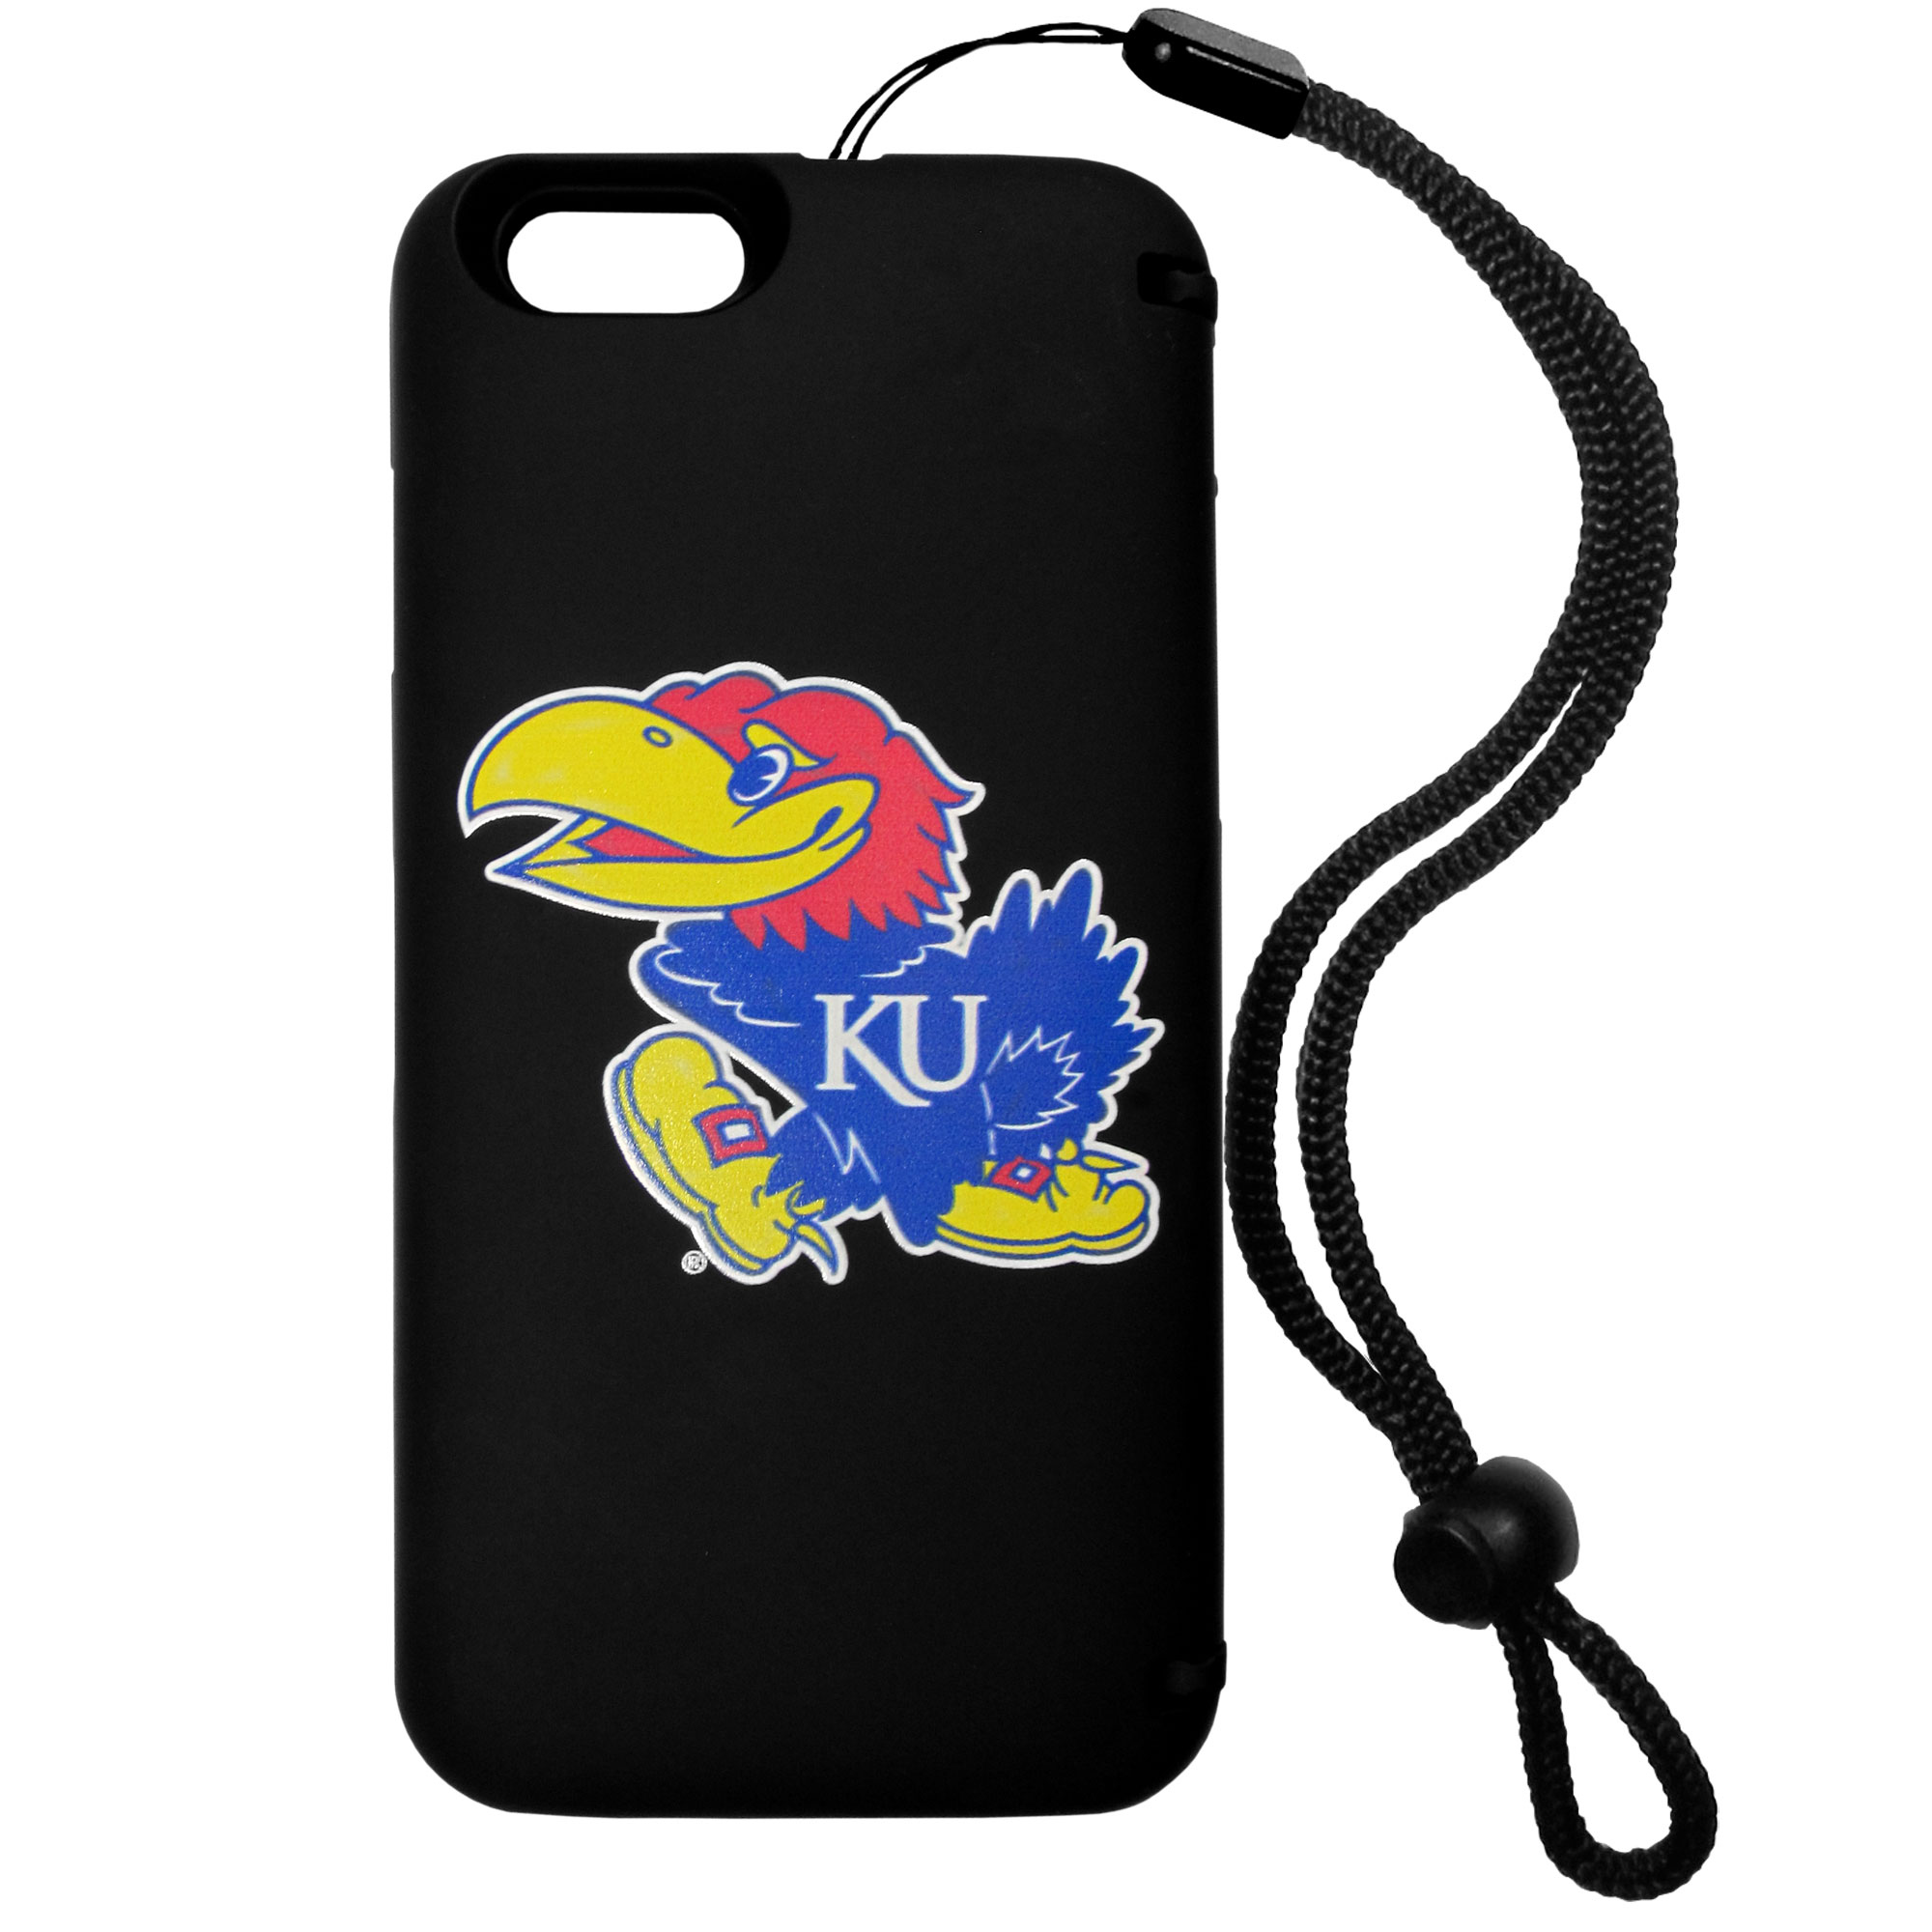 Kansas Jayhawks iPhone 6 Everything Case - This case really does have everything but the kitchen sink! The hidden compartment lets you keep your cards, money and tickets to the big game safe and secure and has a compact mirror so you can make sure your game face is ready to go. It also comes with a kickstand to make chatting and watching videos a breeze. The wrist strap allows you to travel with ease with your everything case. If that's not enough, it also comes with the Kansas Jayhawks logo printed in expert detail on the front.